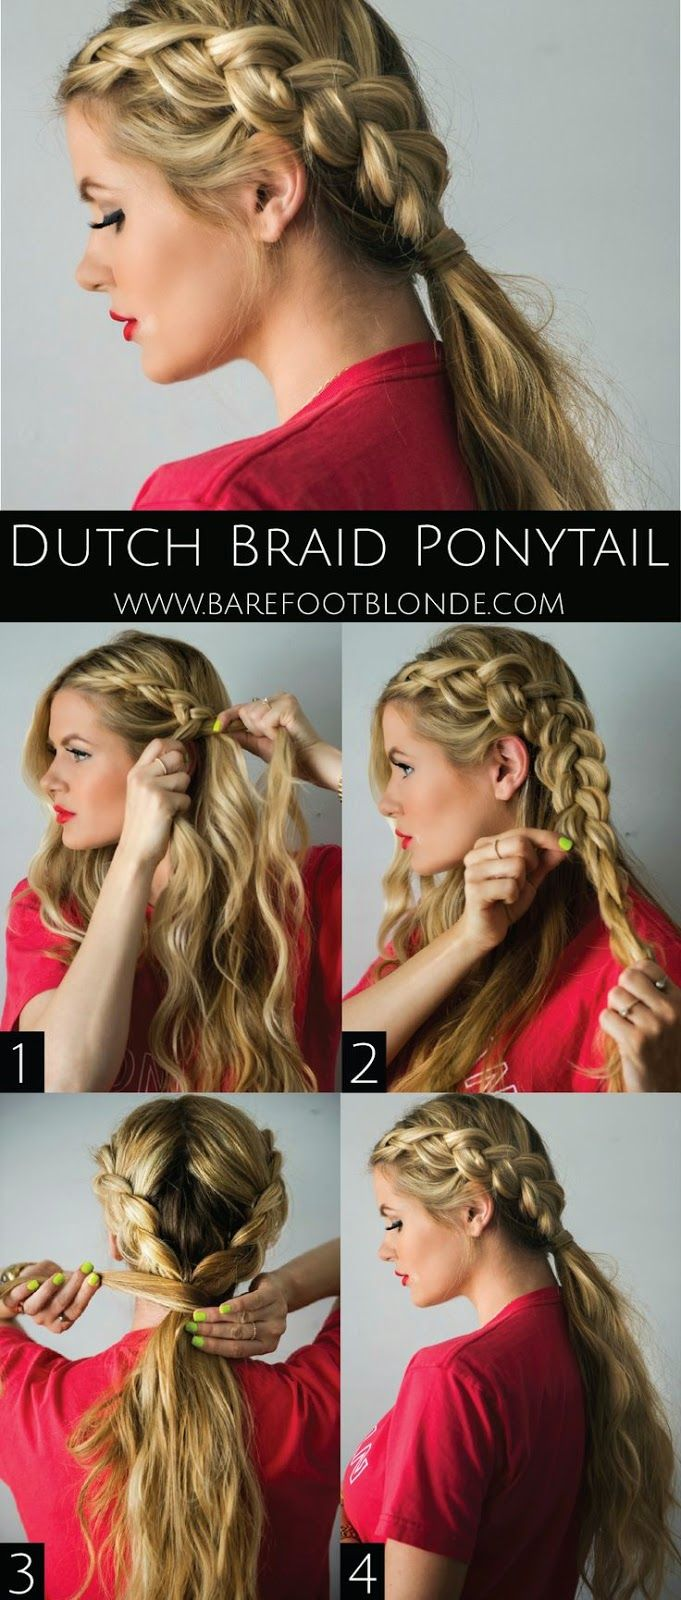 How to chic dutch braid ponytail tutorial by barefoot blonde